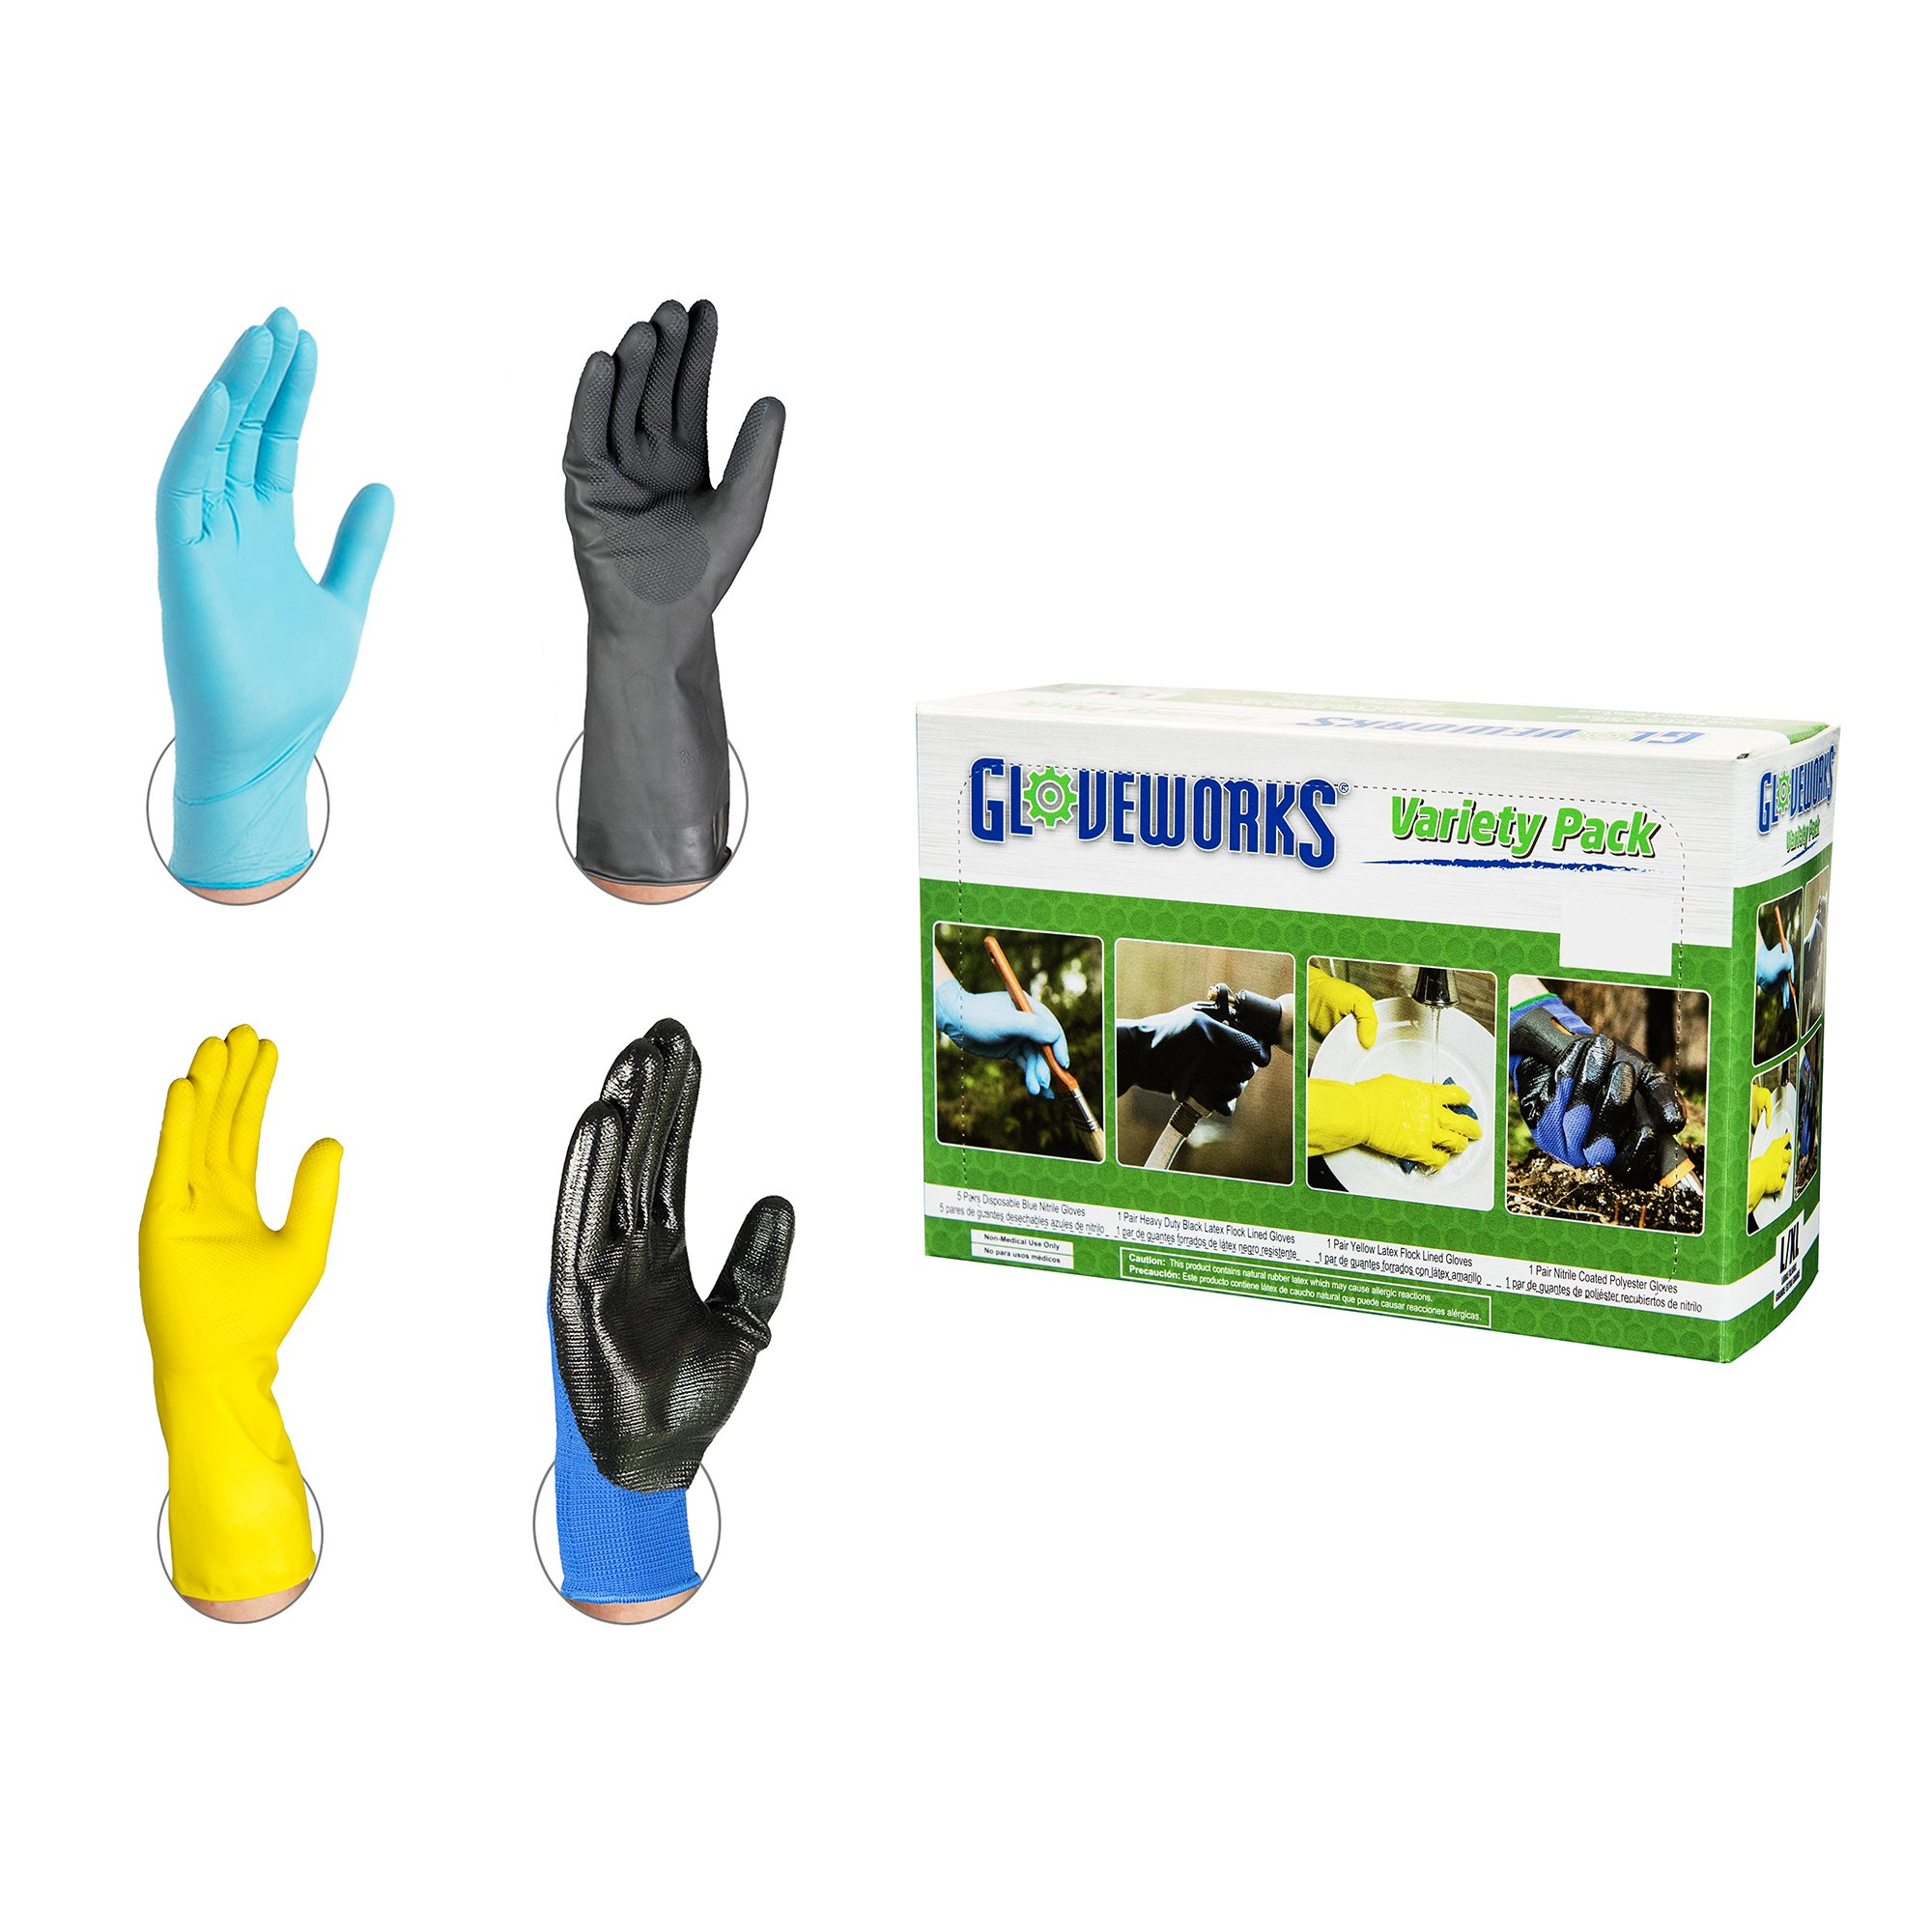 AMMEX - GWDIYSM - Latex and Nitrile Gloves - Gloveworks - 8 pairs/box; 20 boxes/case, Industrial, Small/Medium (Case of 160 Pairs)